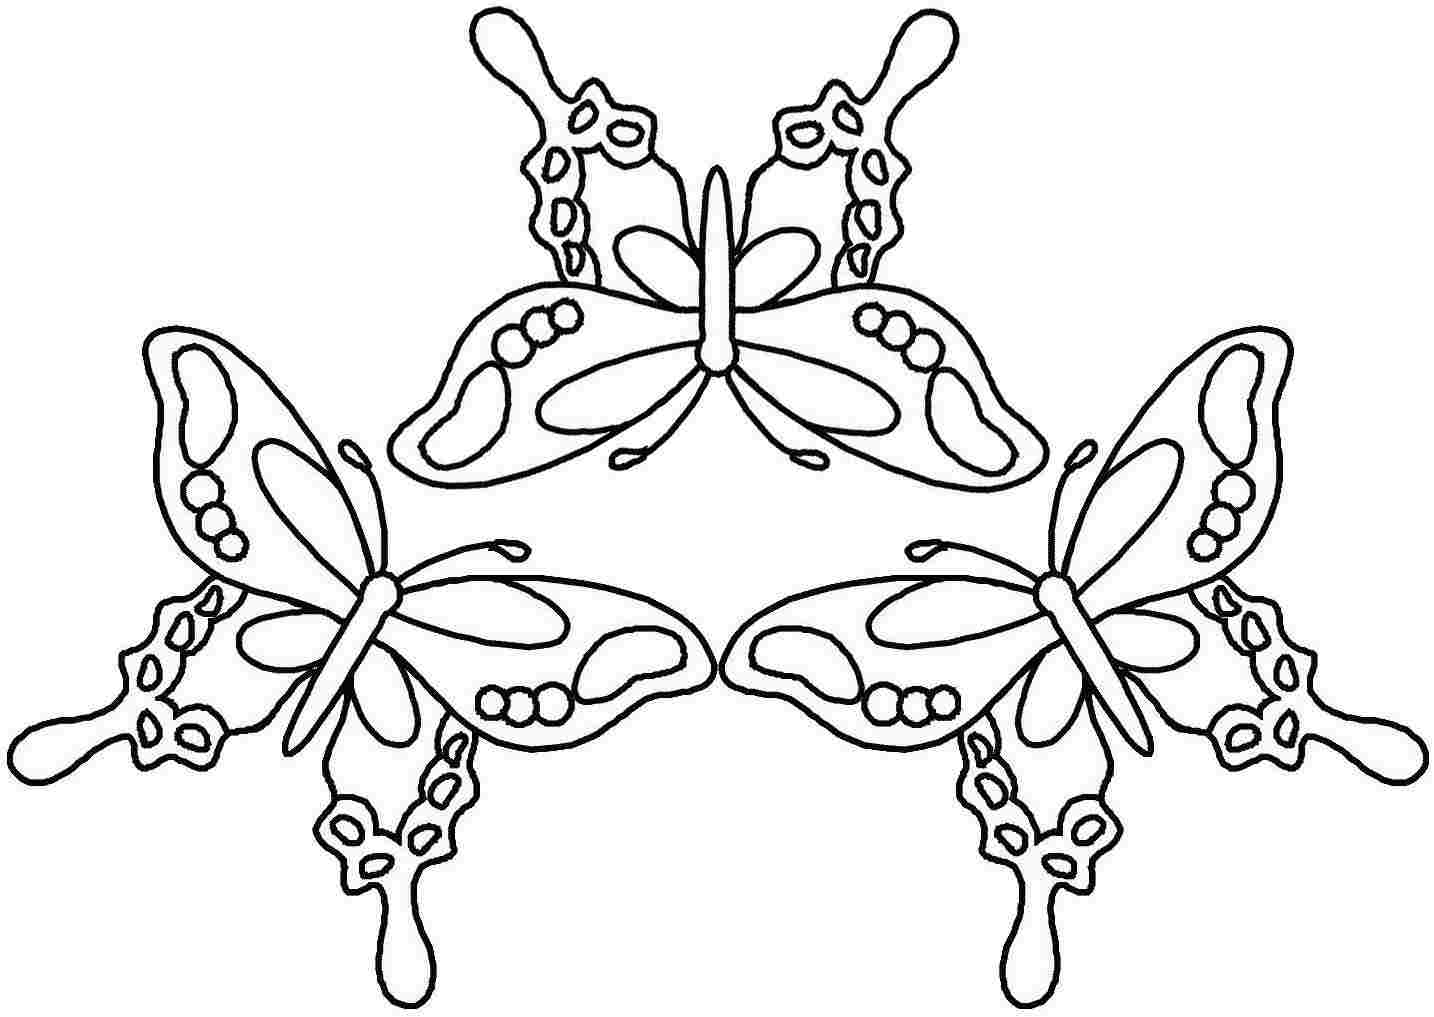 butterfly coloring pages for kids printable monarch butterfly coloring pages for adults butterfly coloring pages free - Printable Butterfly Coloring Pages 2